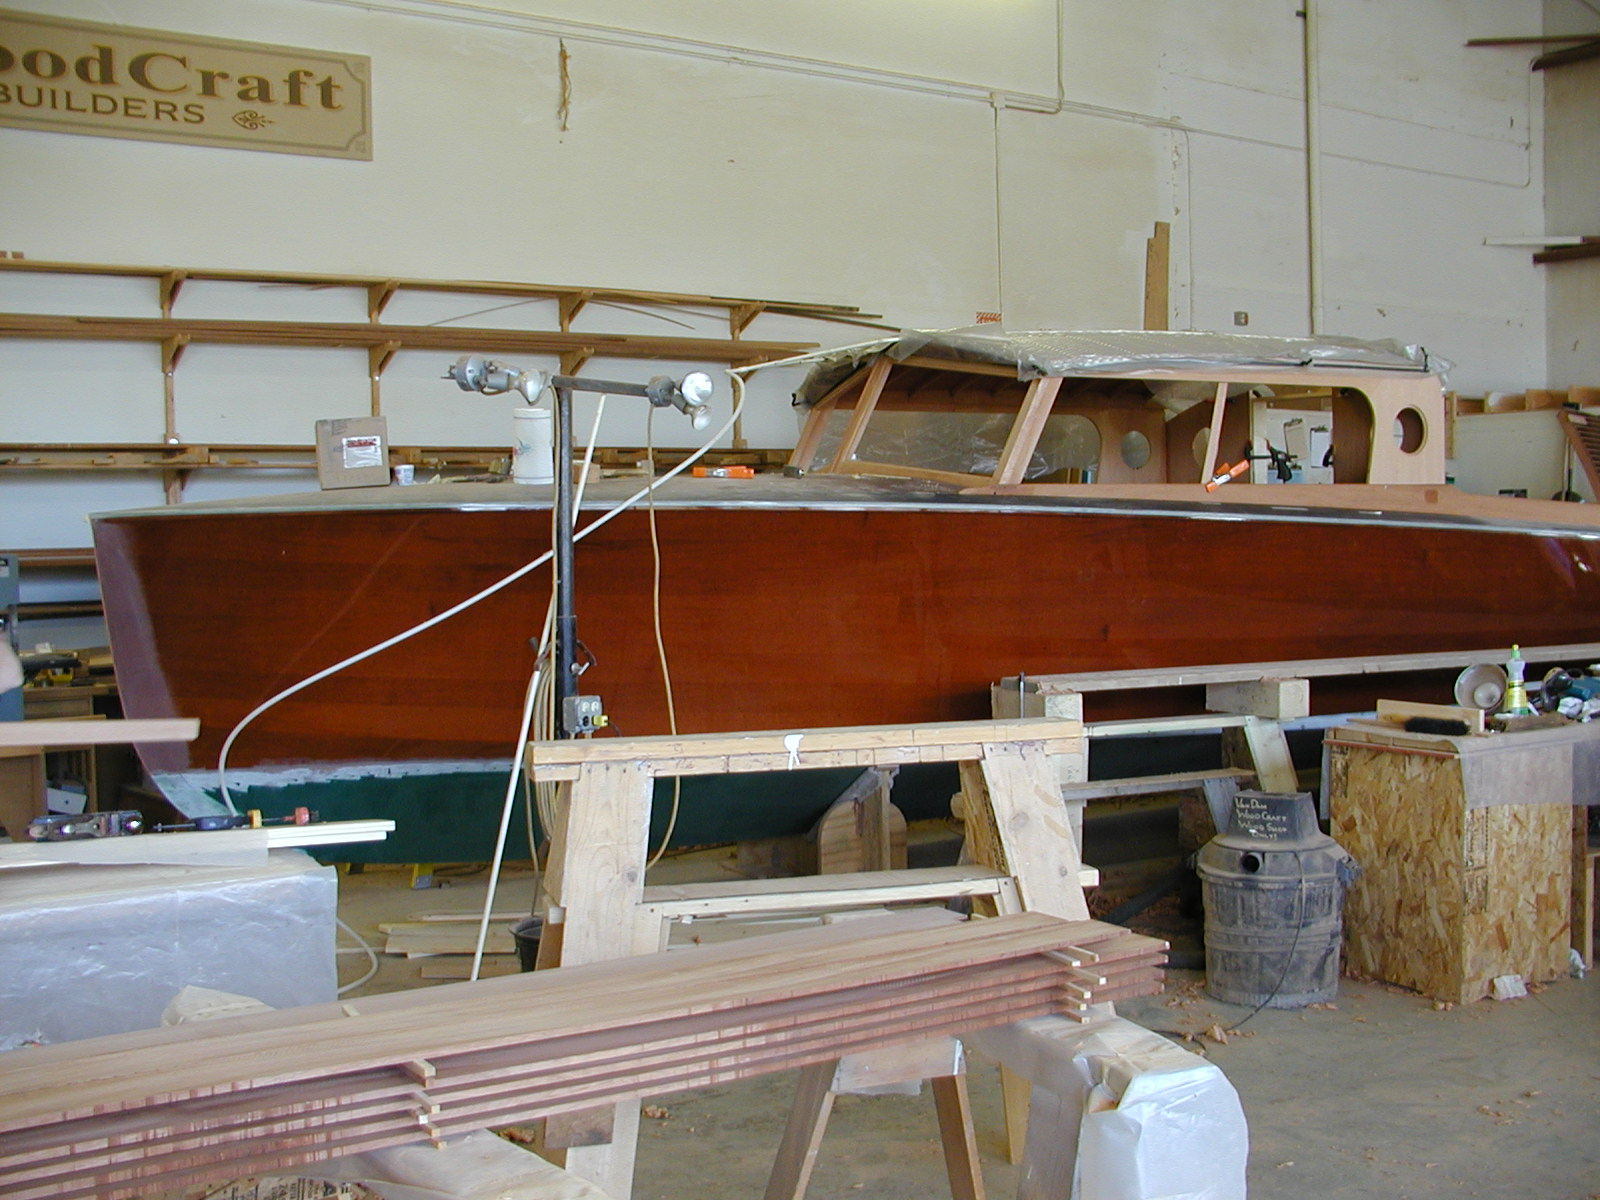 Cabin top being completed on Cyclone